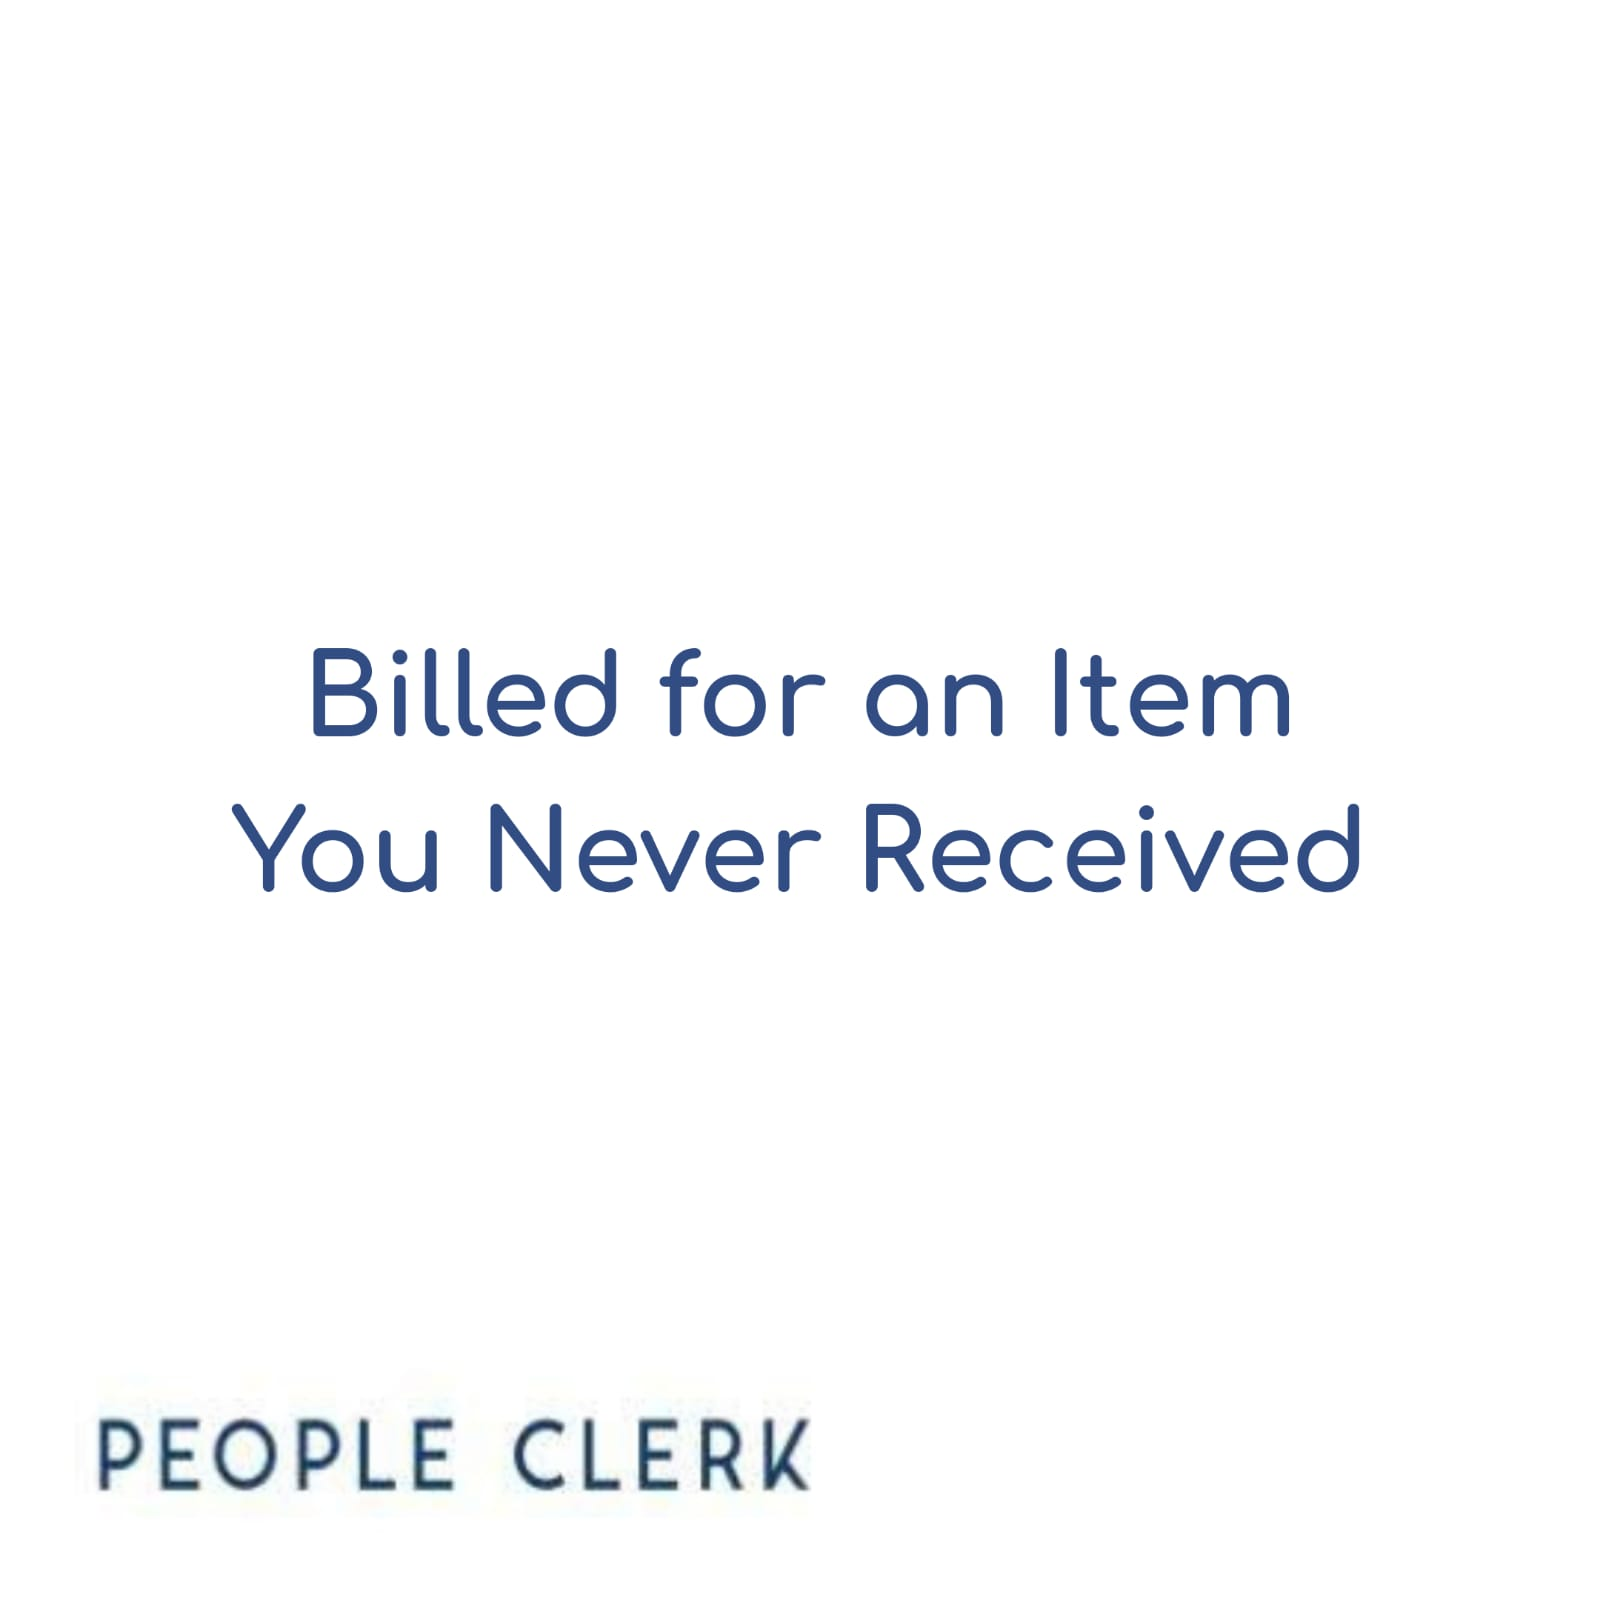 Billed for an Item You Never Received